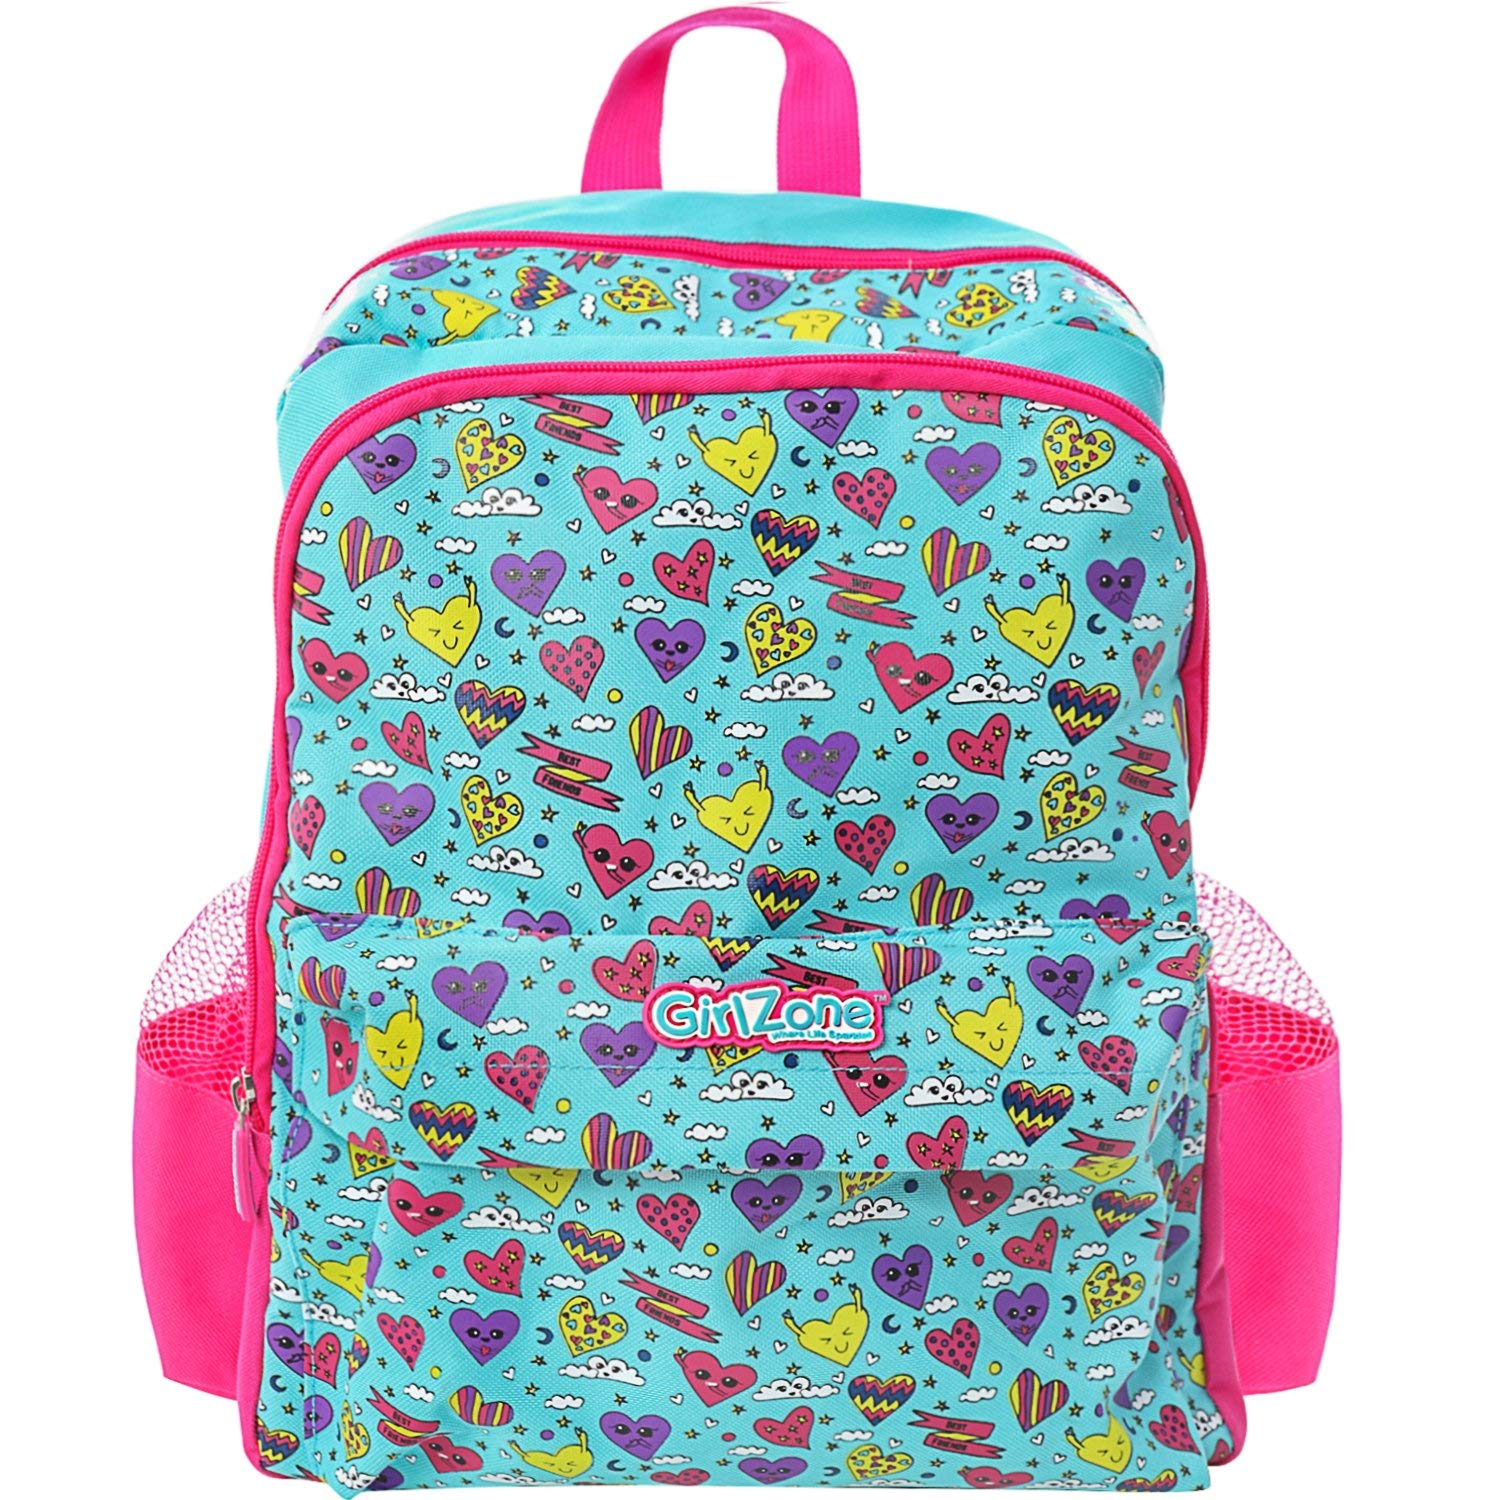 GirlZone BACKPACK FOR GIRLS: Fun & Funky Rucksack School Bag for kids. Great Birthday Present/Gift Idea For Girls.